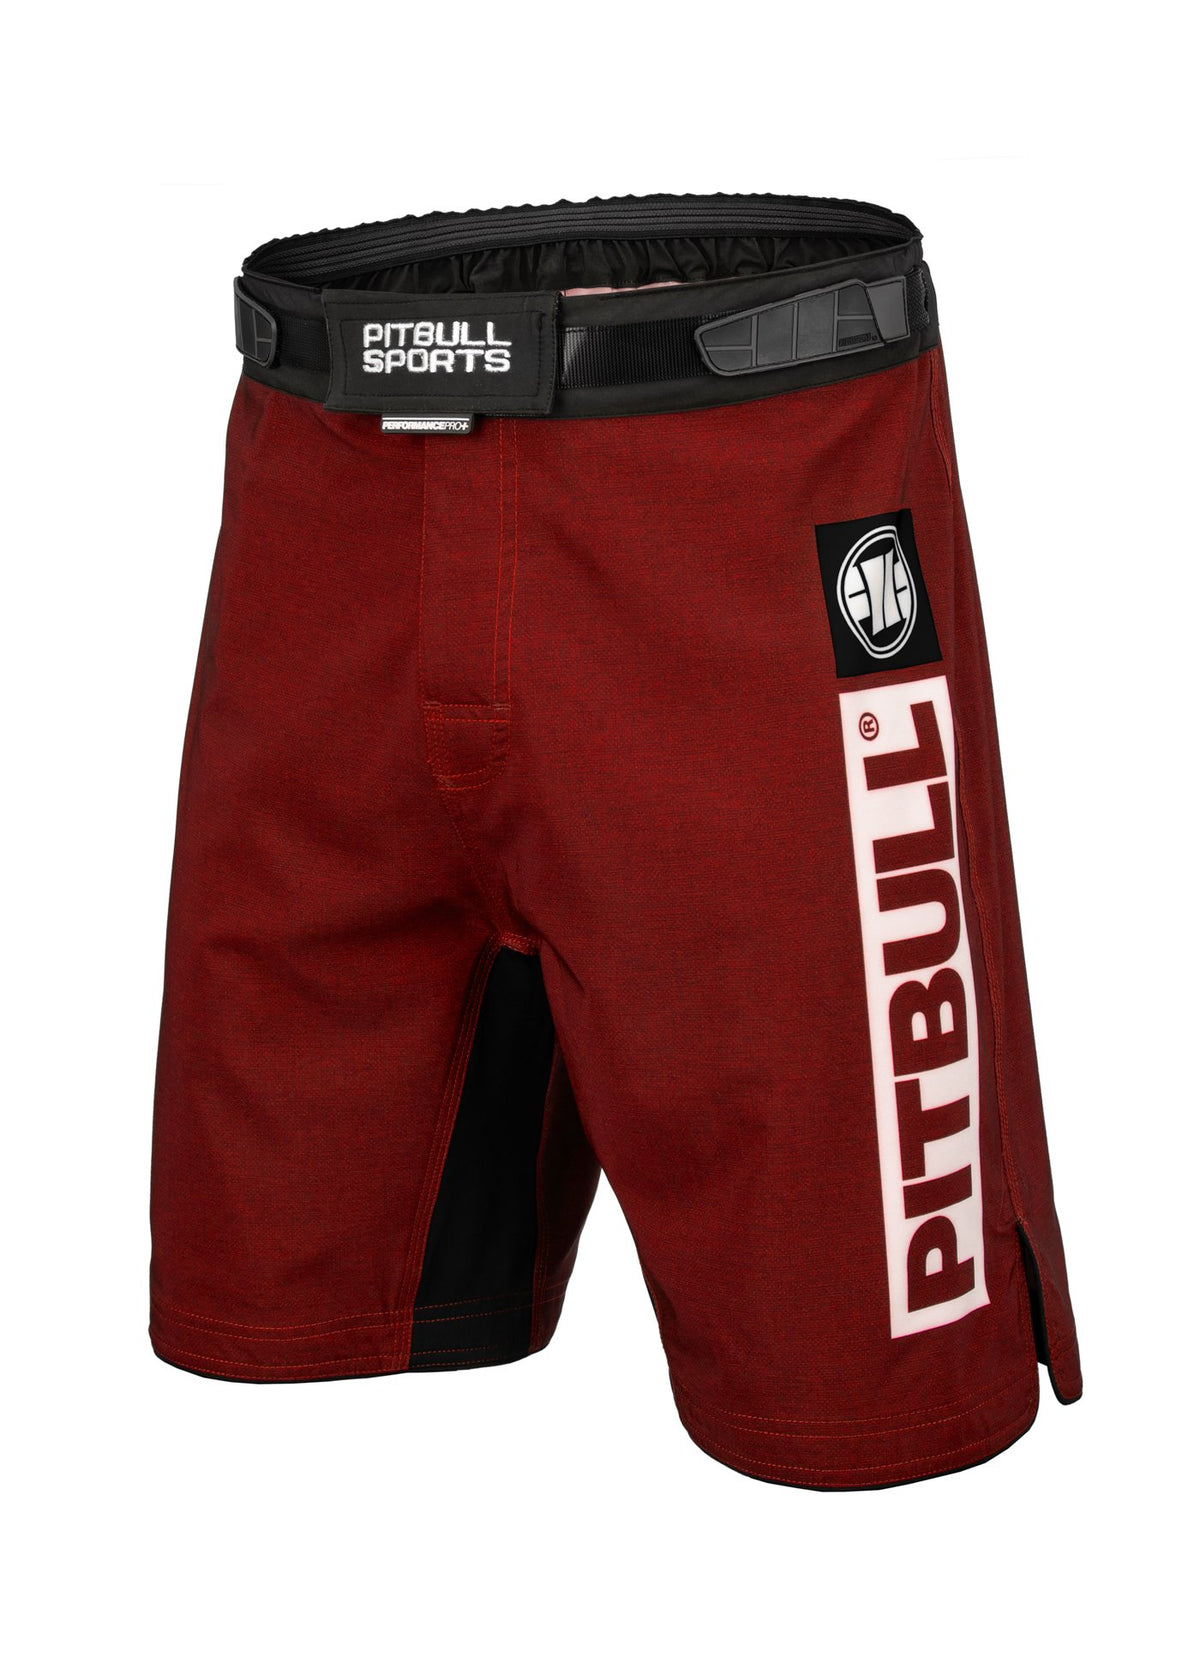 Grappling Shorts HILLTOP Red - Pitbull West Coast U.S.A.